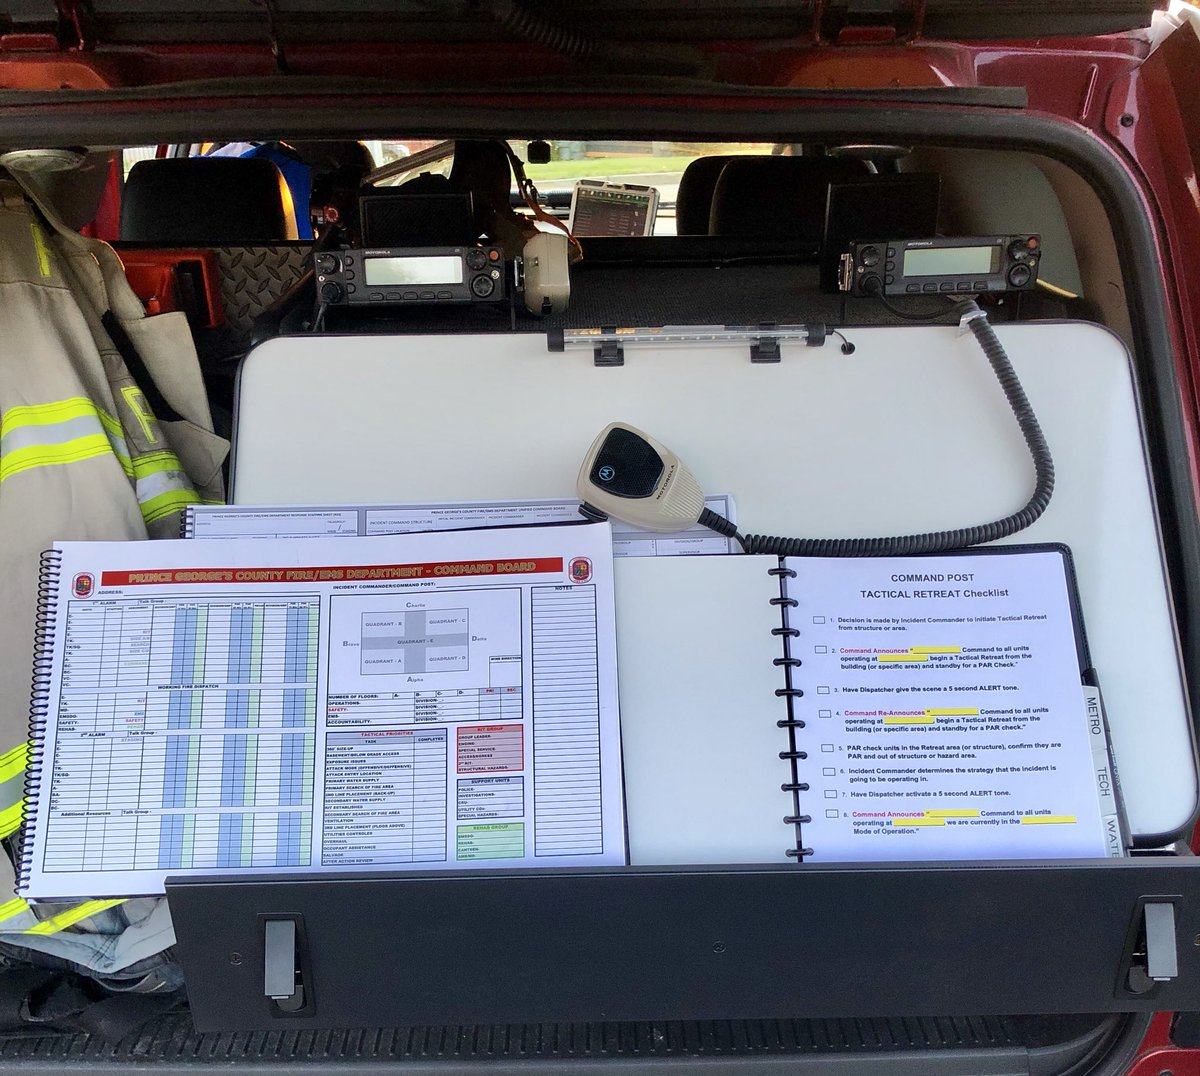 Practicing with command chart and Mayday checklist by listening to archived audio recordings from past incidents. Never enough practice in getting it right for the firefighters inside the buildings. @TTraining @fireengineering @fdic<br>http://pic.twitter.com/Z0s1WMPByw